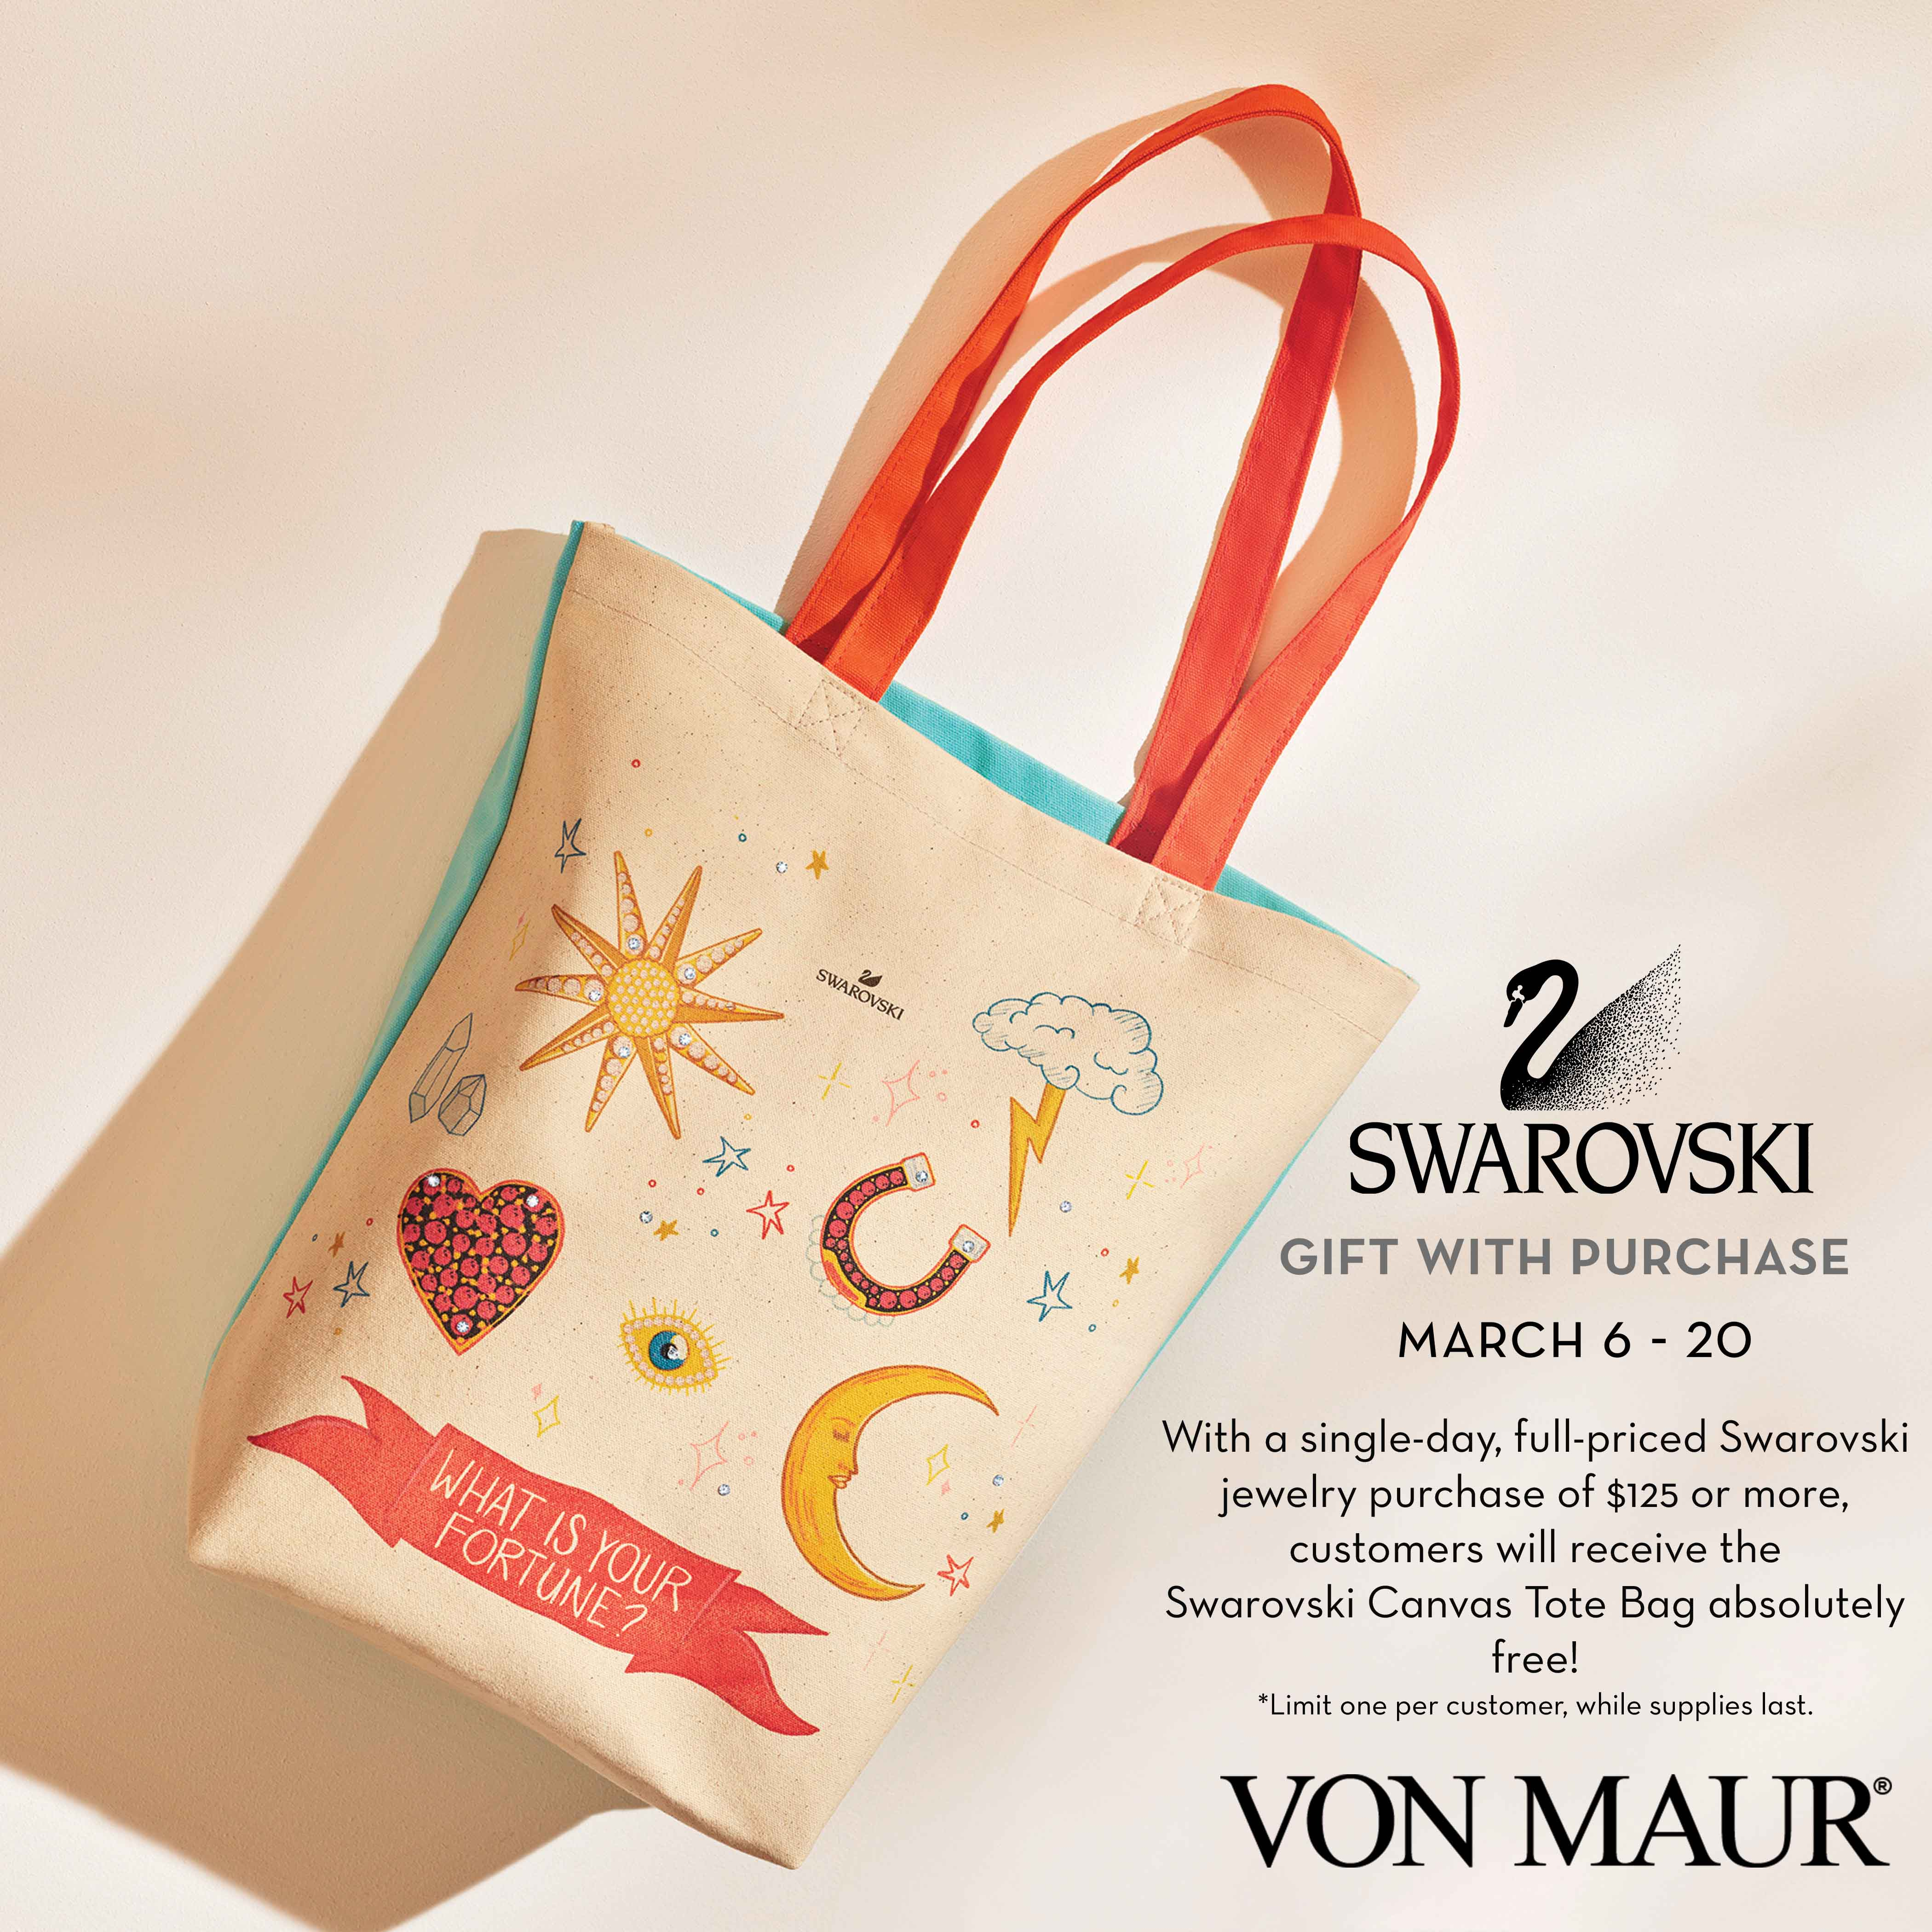 Swarovski Canvas Tote Bag Gift With Purchase